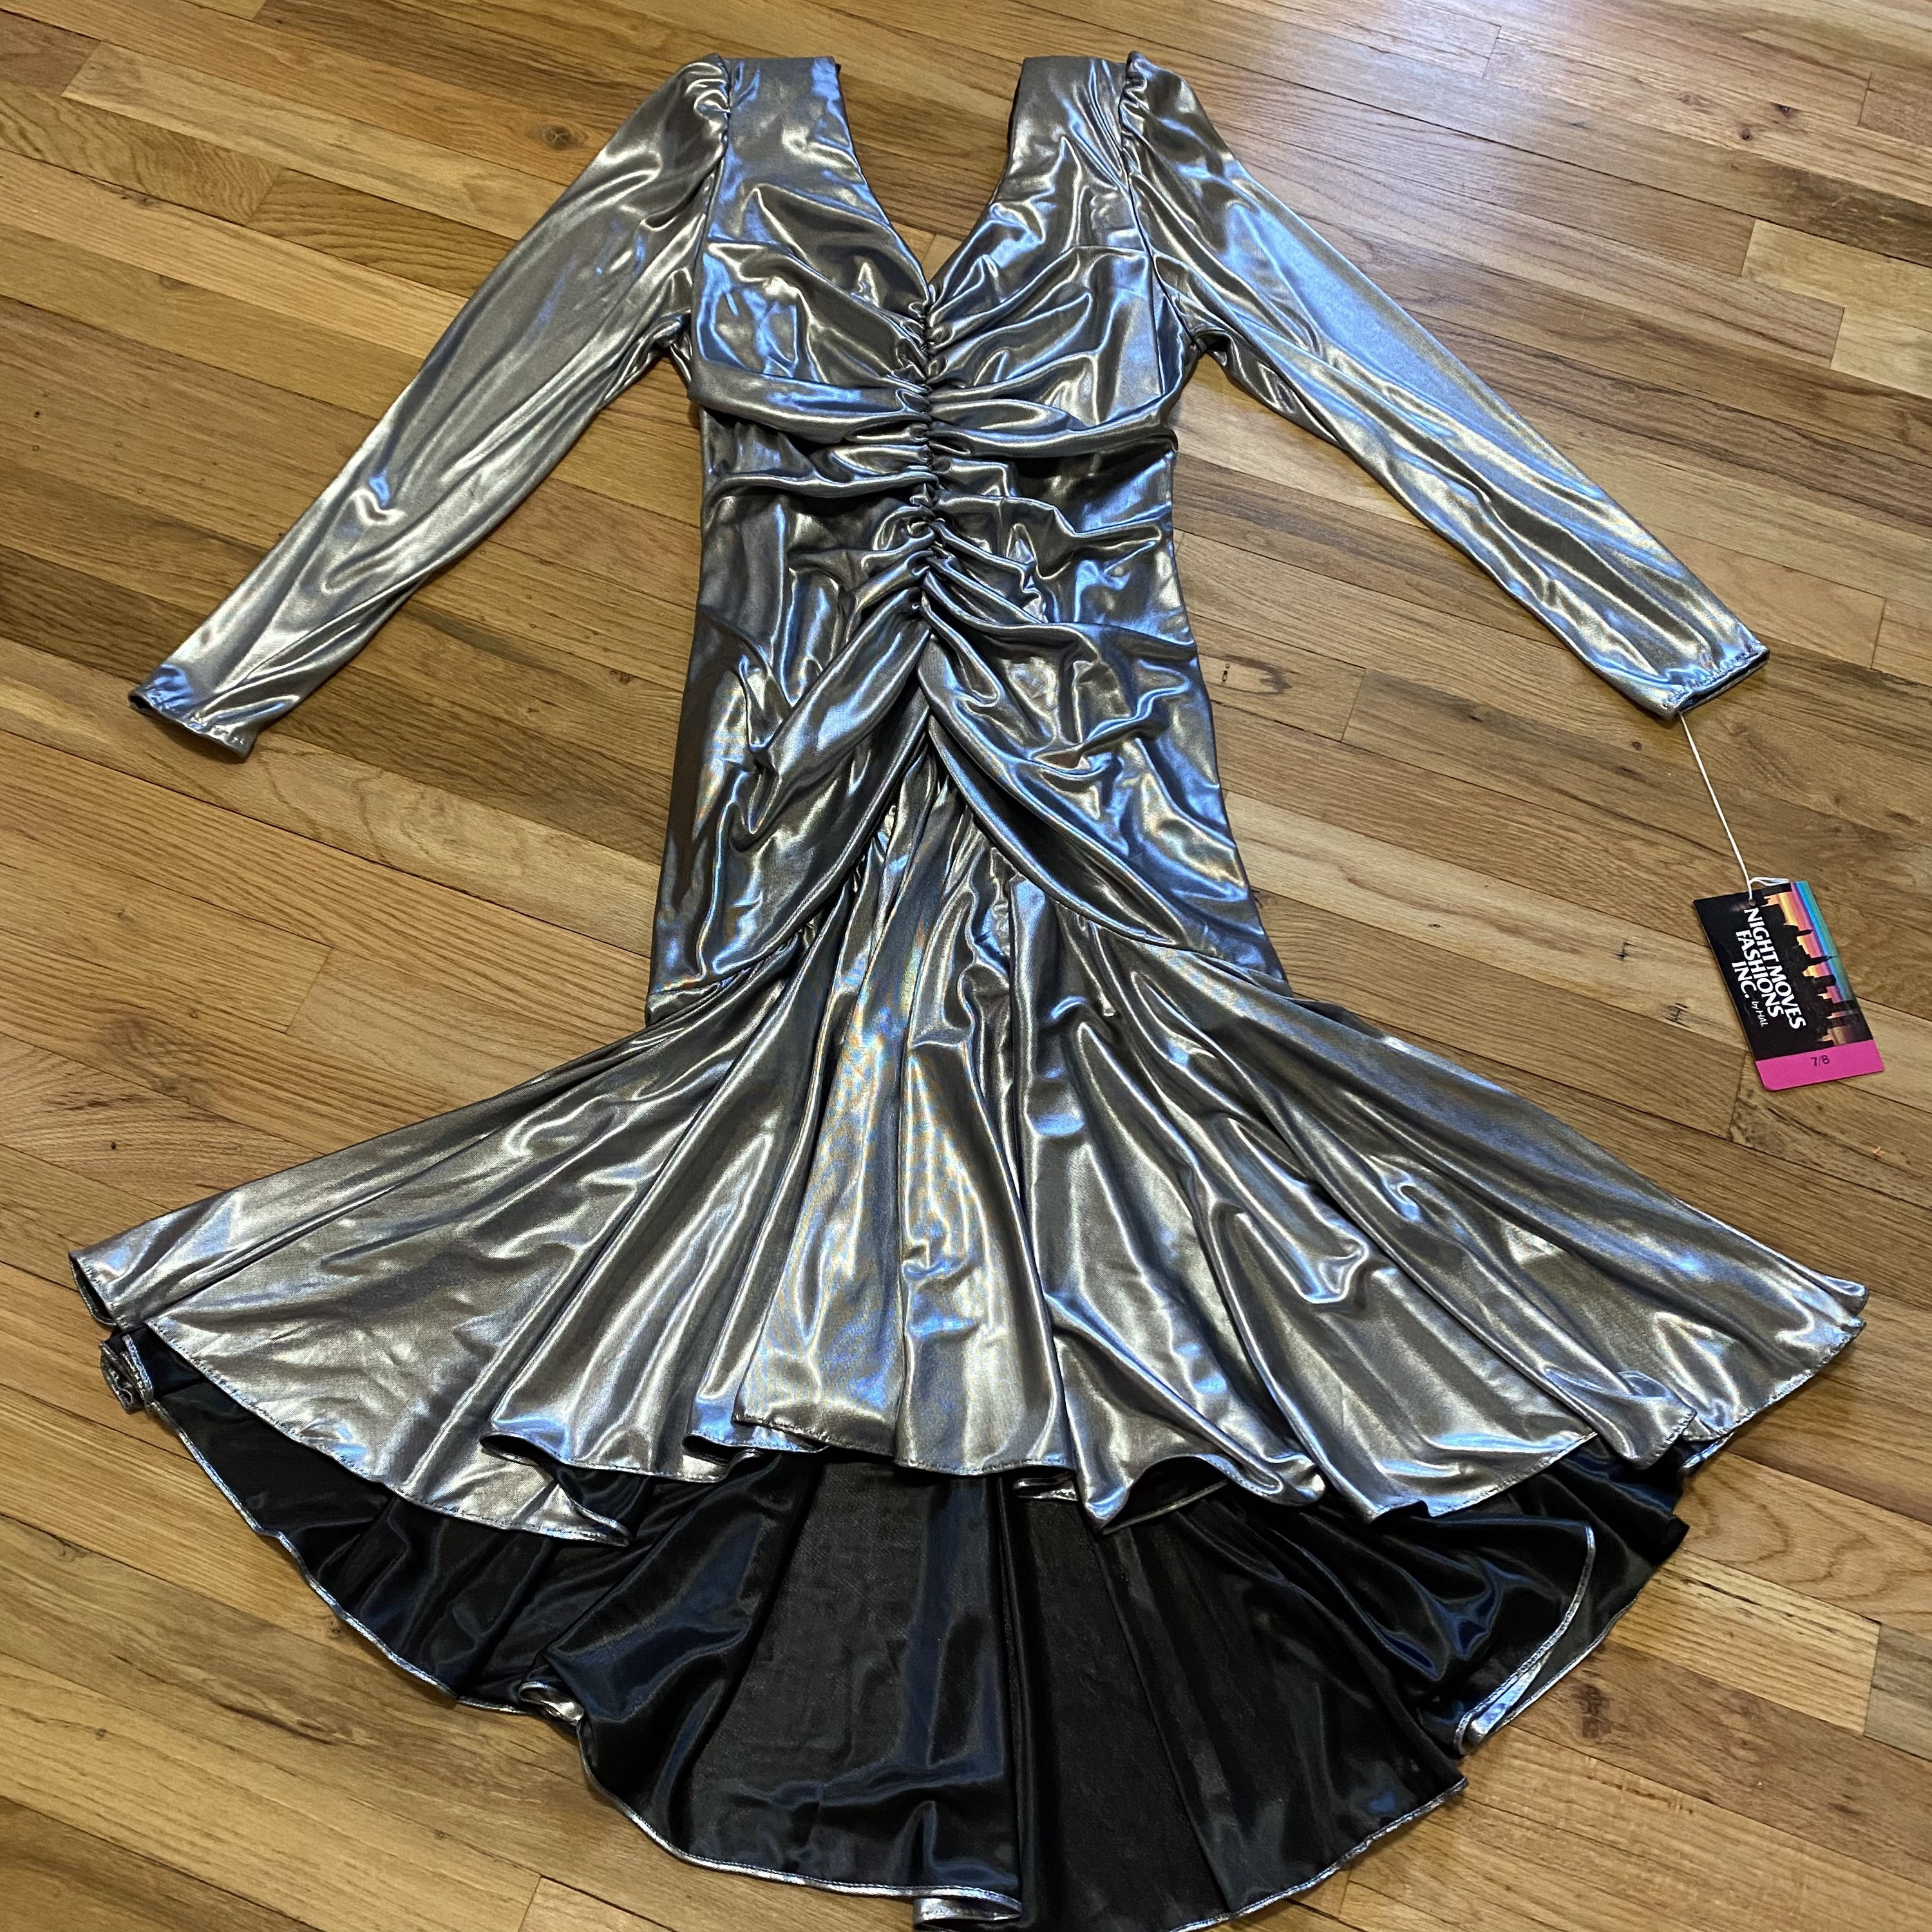 80s Dresses | Casual to Party Dresses Vintage 80S Ruched Mermaid Silver Metallic Glam Prom Cocktail Dress $0.00 AT vintagedancer.com